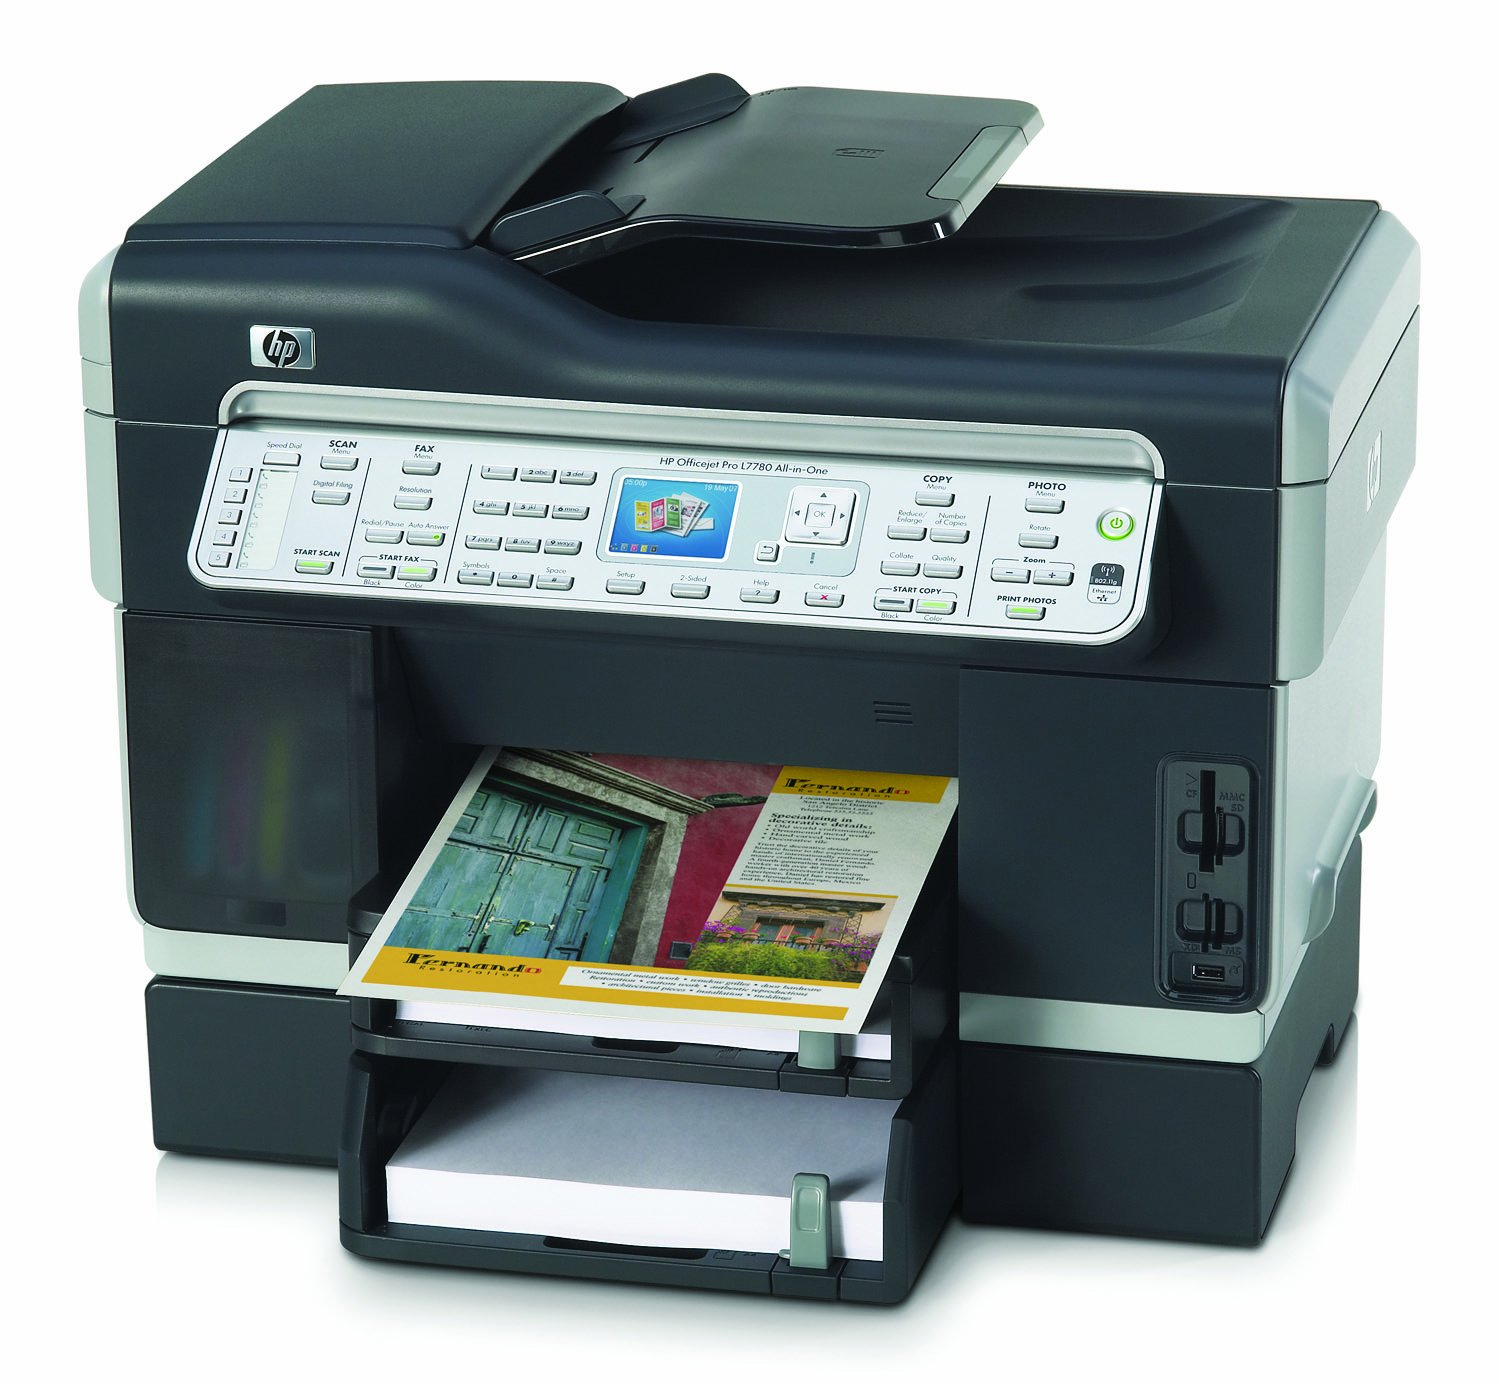 HP Officejet Pro L7780 Wireless Network Enabled All-in-One Printer,  Scanner, Copier and Fax: Amazon.co.uk: Computers & Accessories